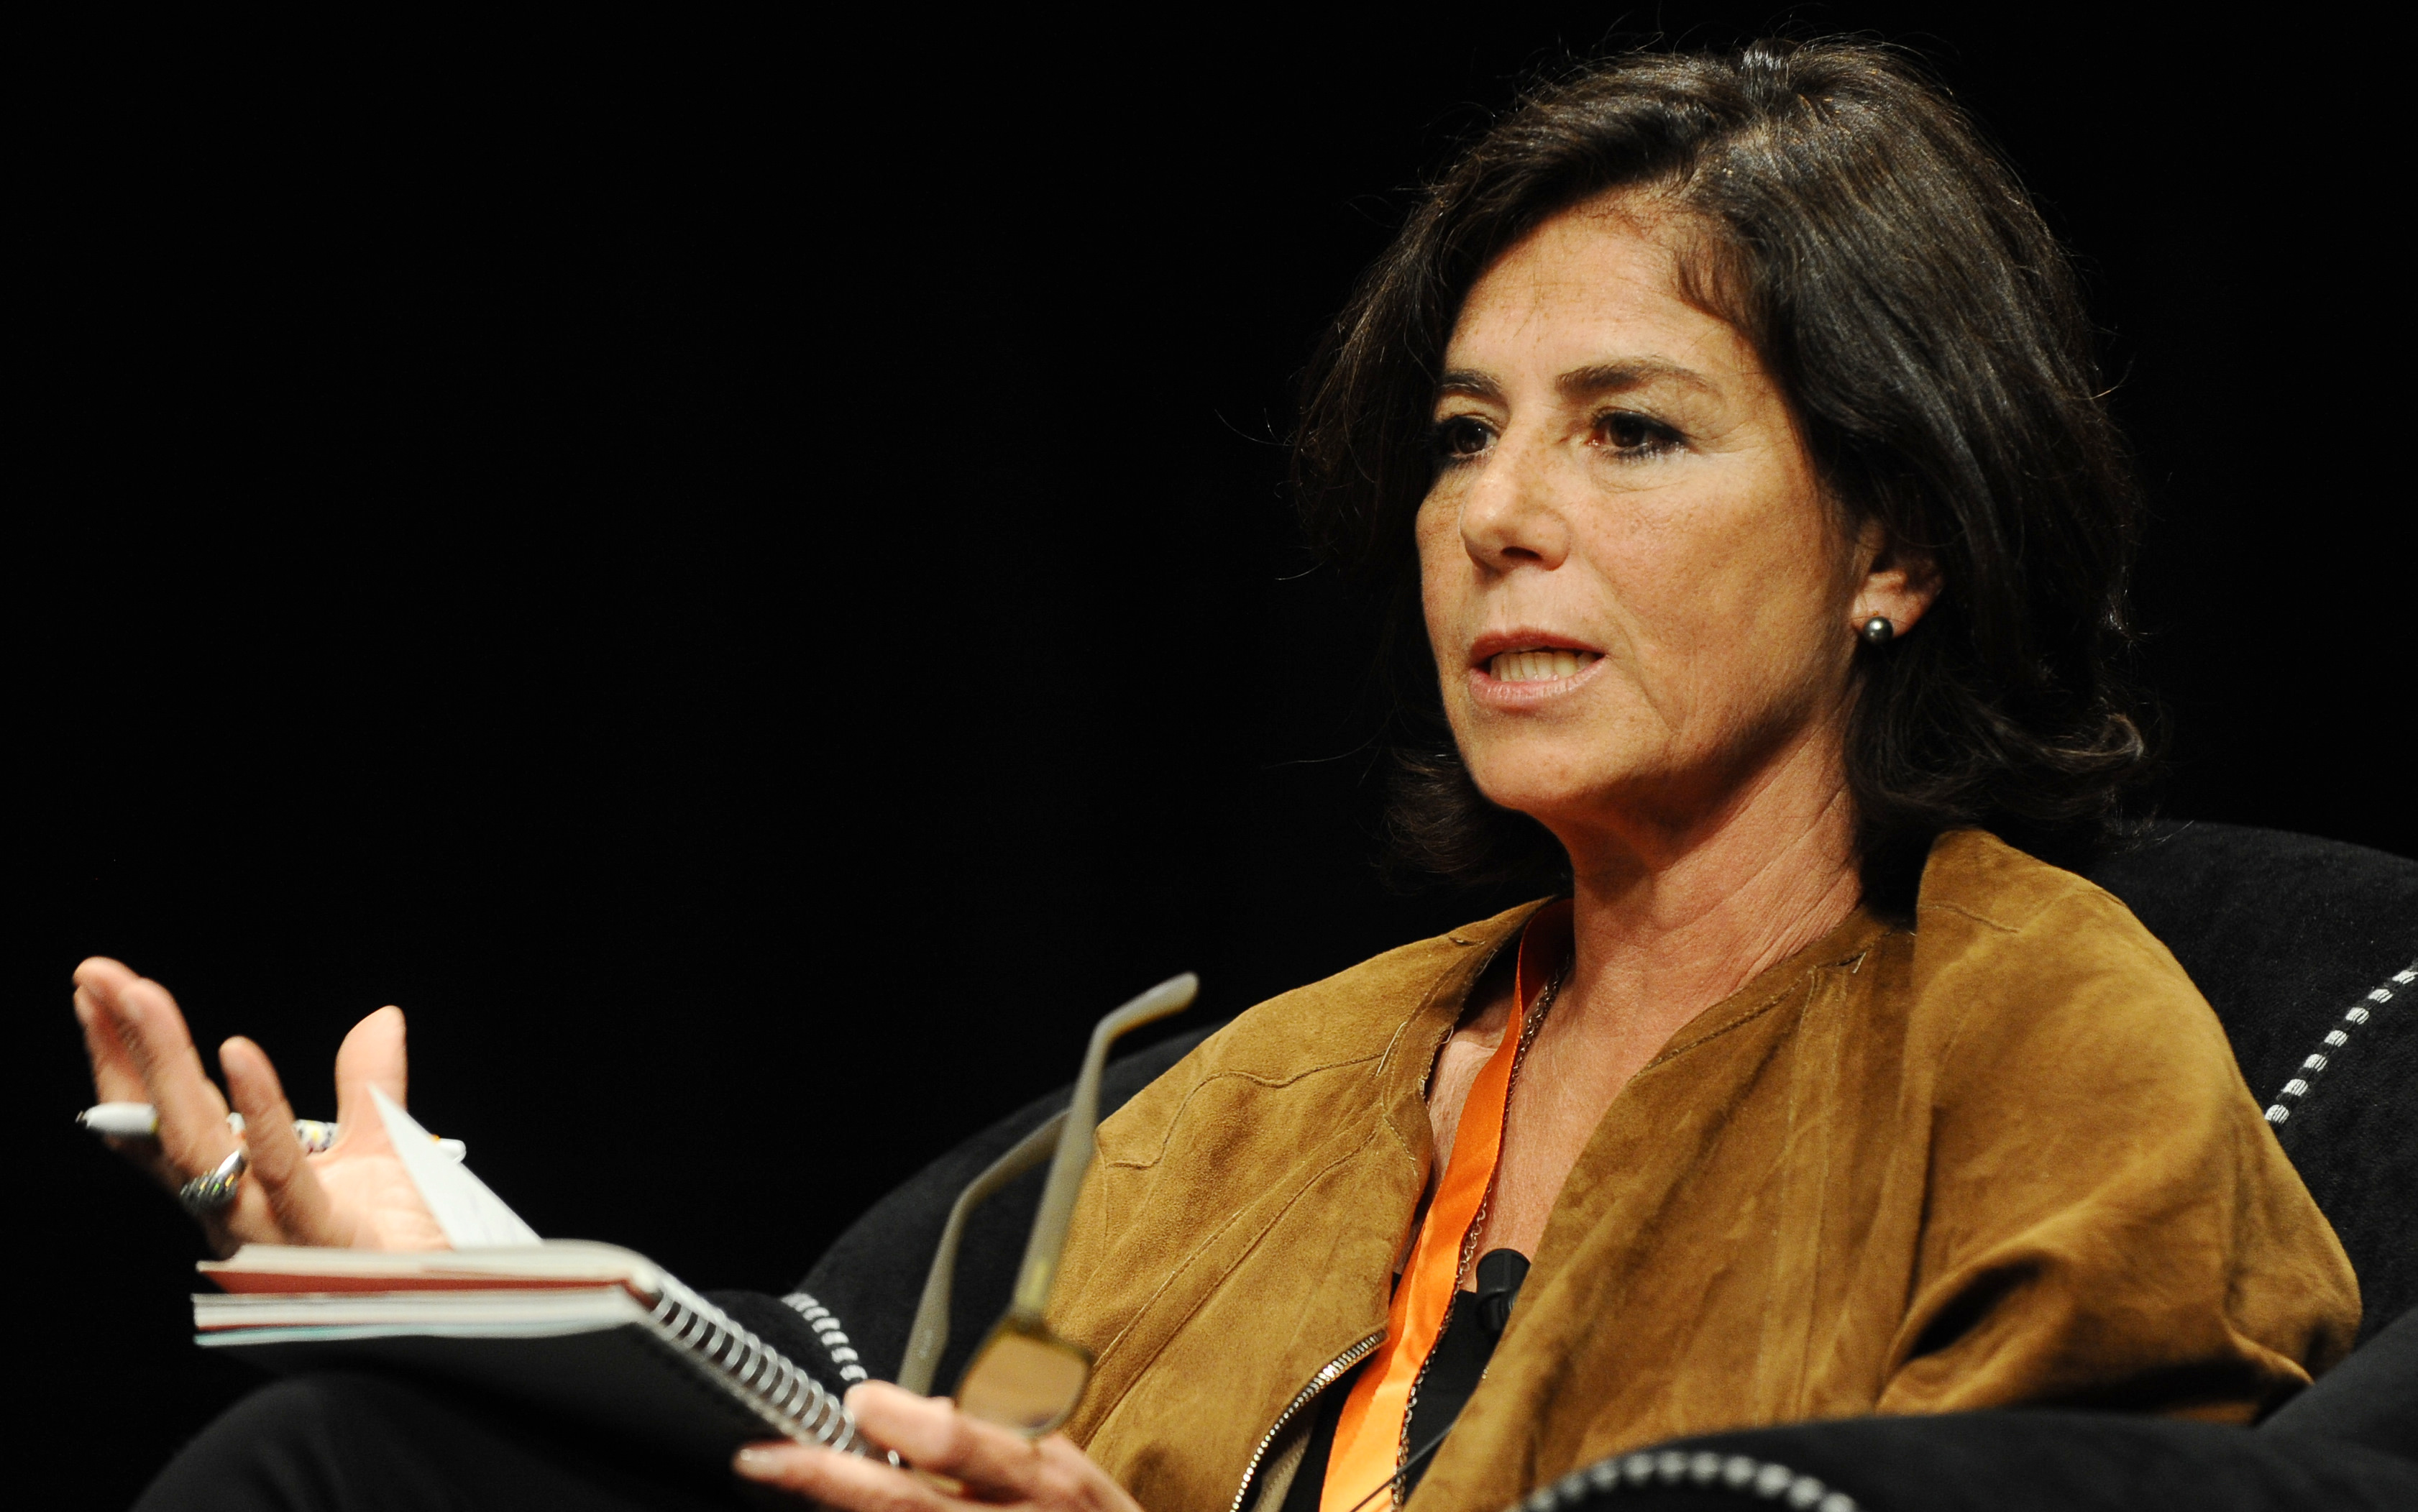 Lucrezia Reichlin at the Festival of Economics in [[Trento]] in 2013.